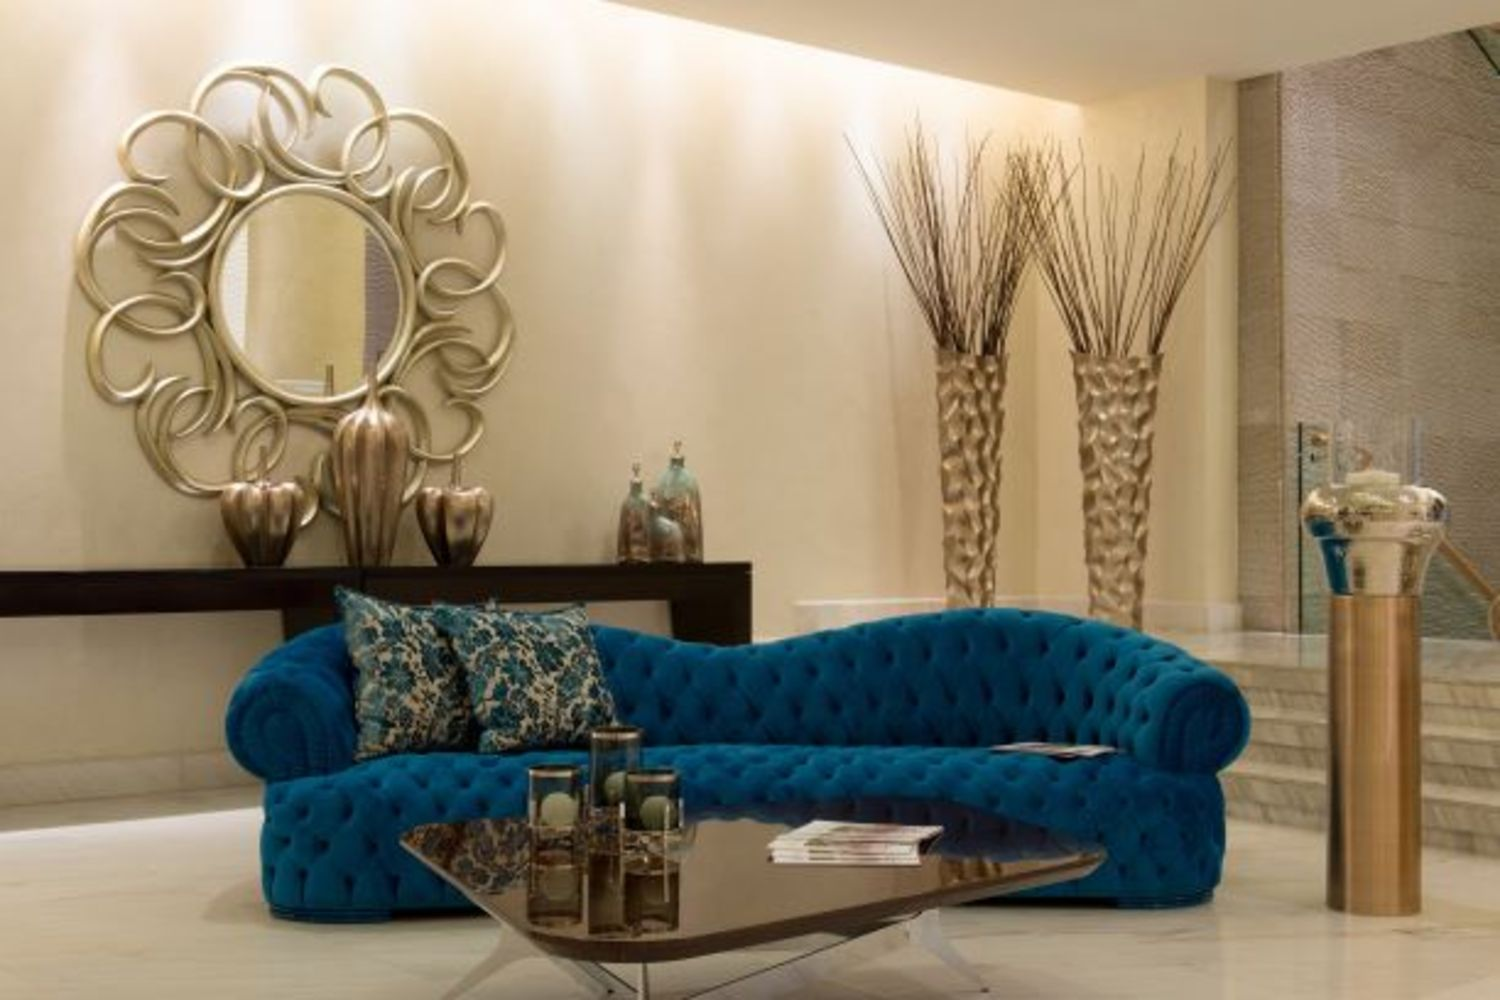 Luxury Interior Furniture Sale - Everything from Beds and Tables to Vases and Mirrors Stunning Curated Collection at Amazing Prices